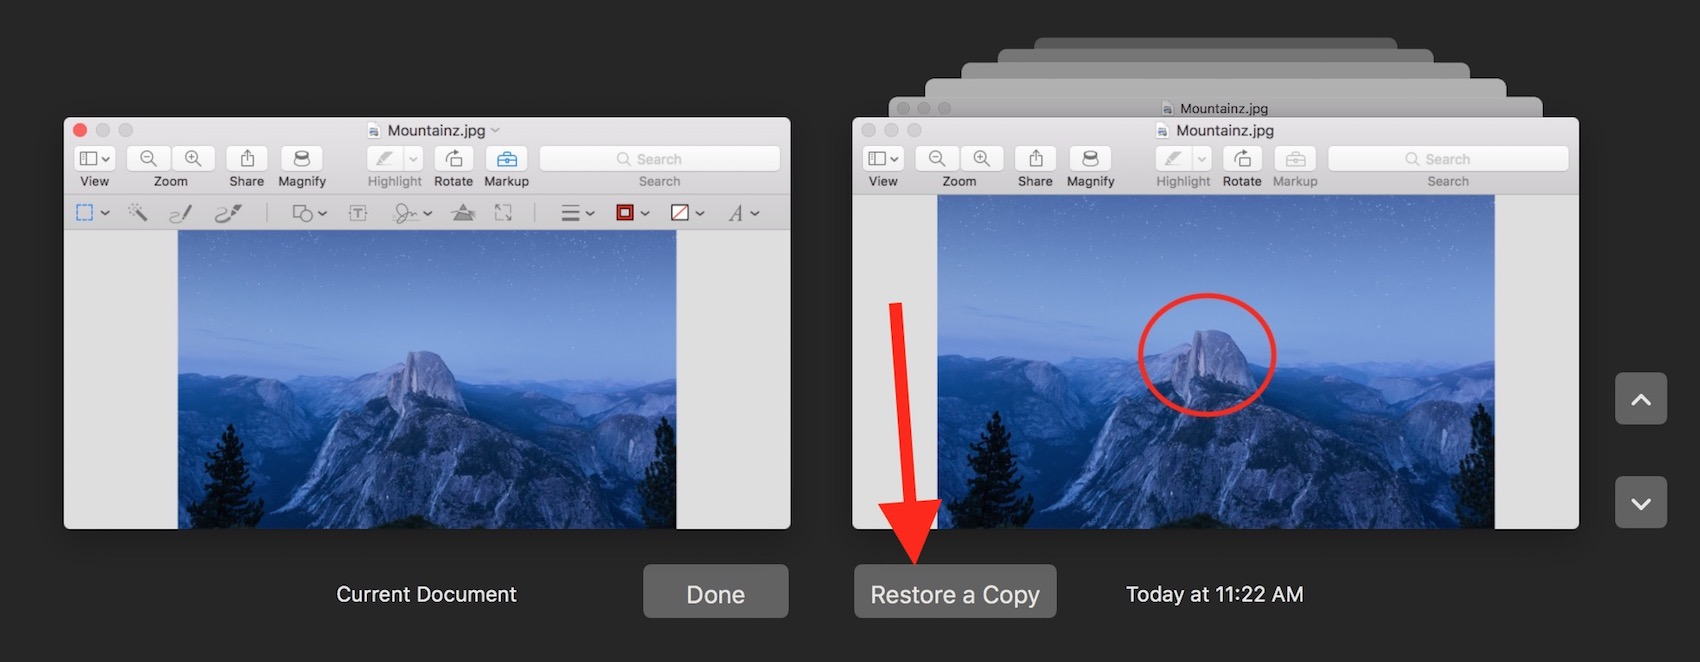 If you want to restore a file without overwriting the version you're using Option-click Restore to choose Restore a Copy